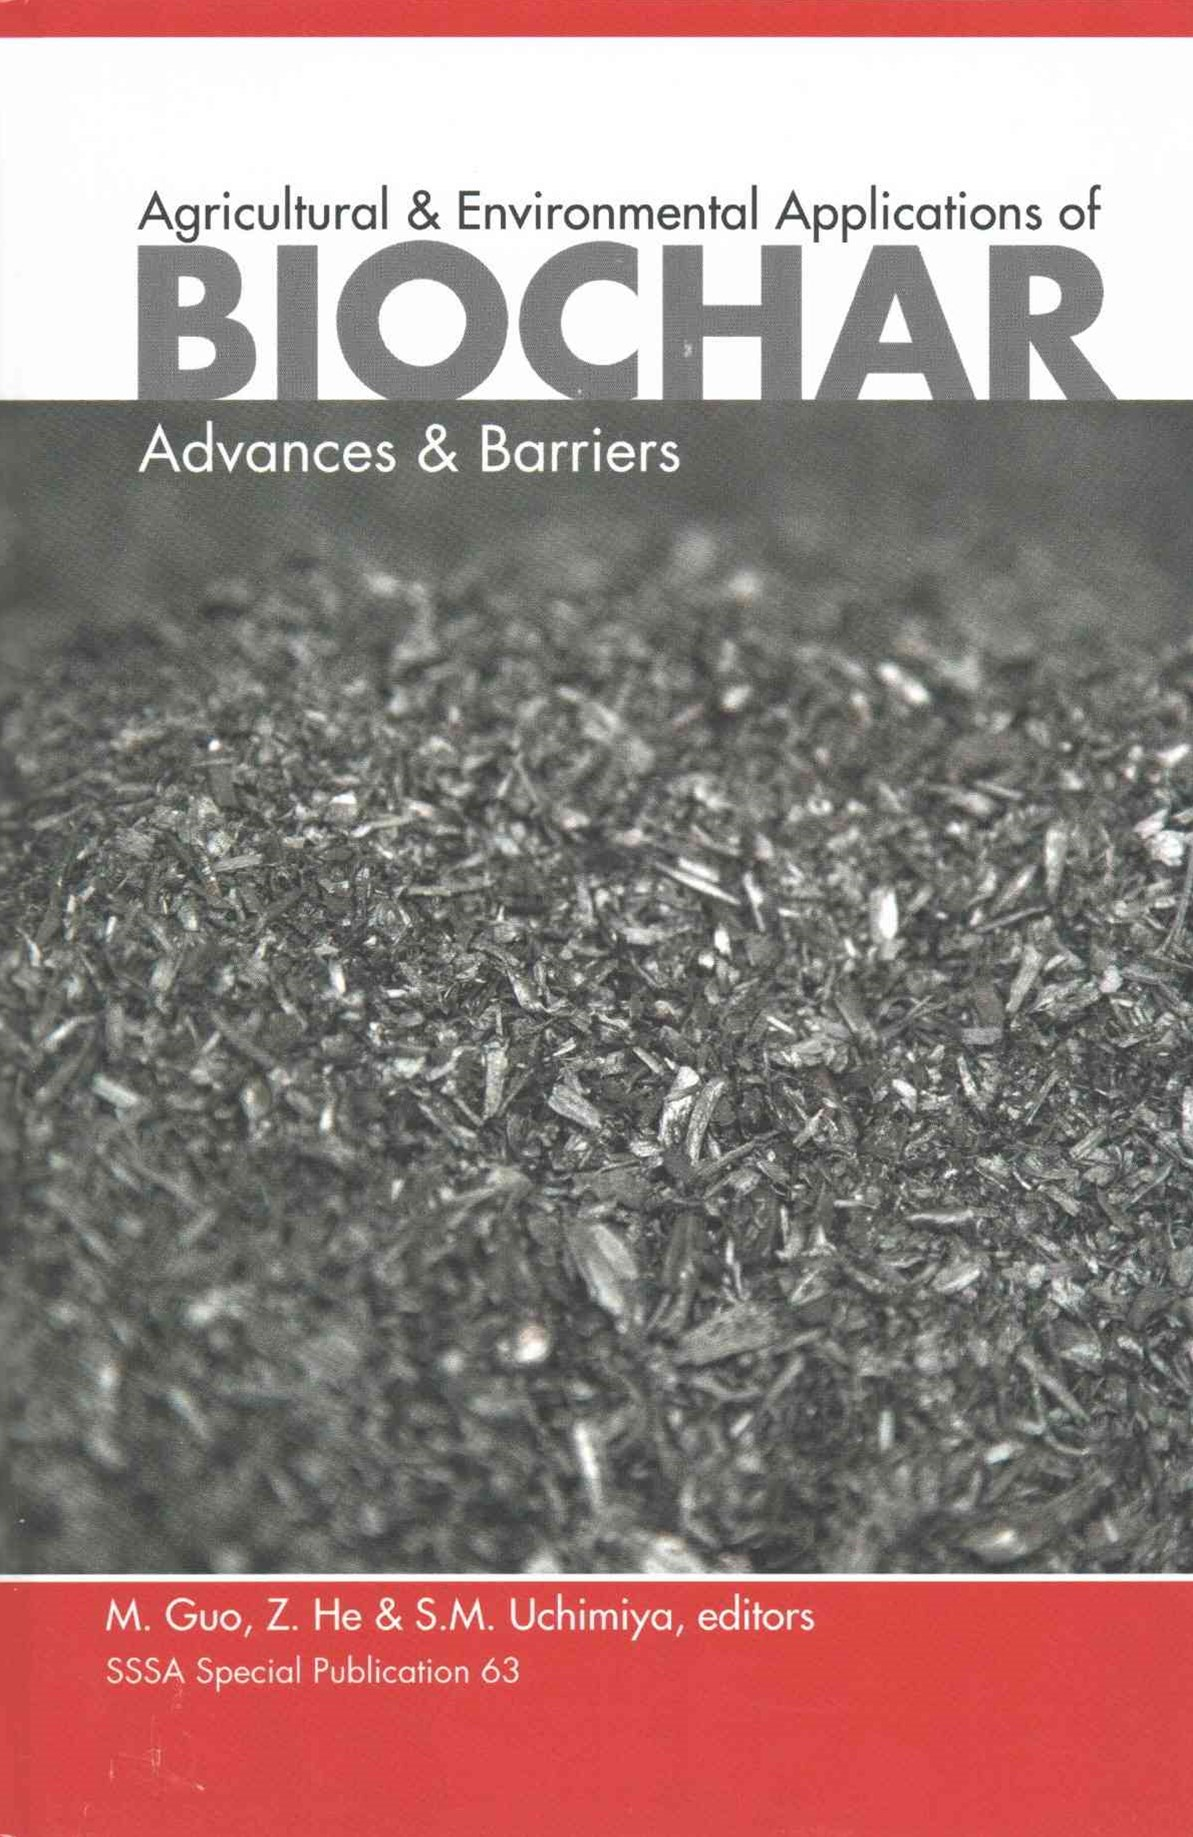 Agricultural and Environmental Applications of Biochar